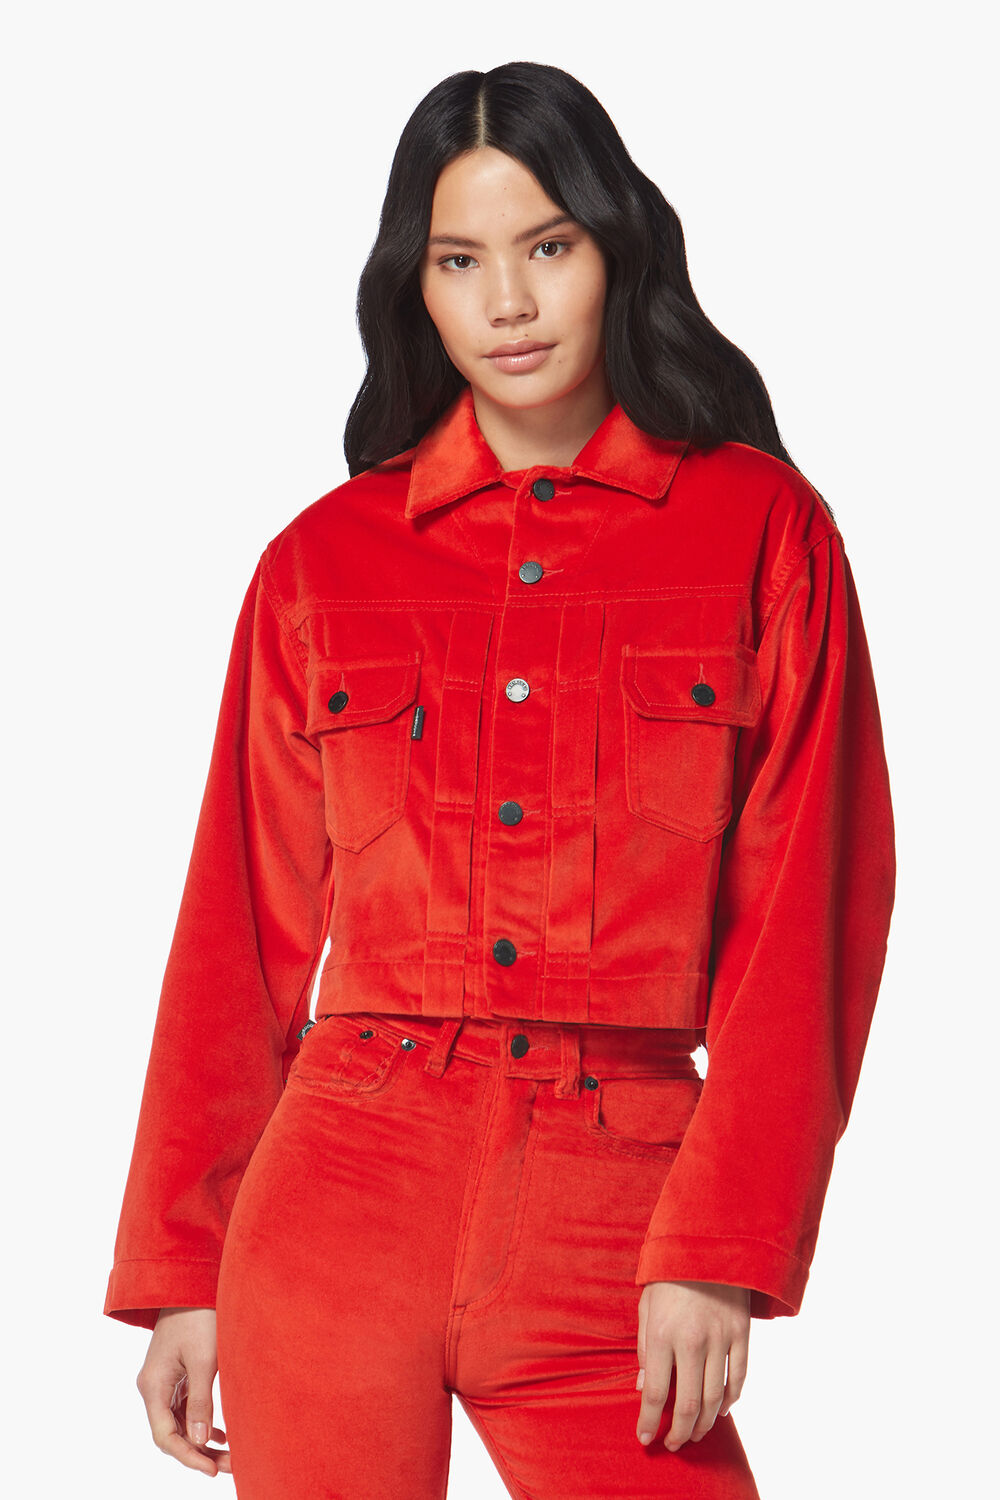 Berty Velvet Jacket Red